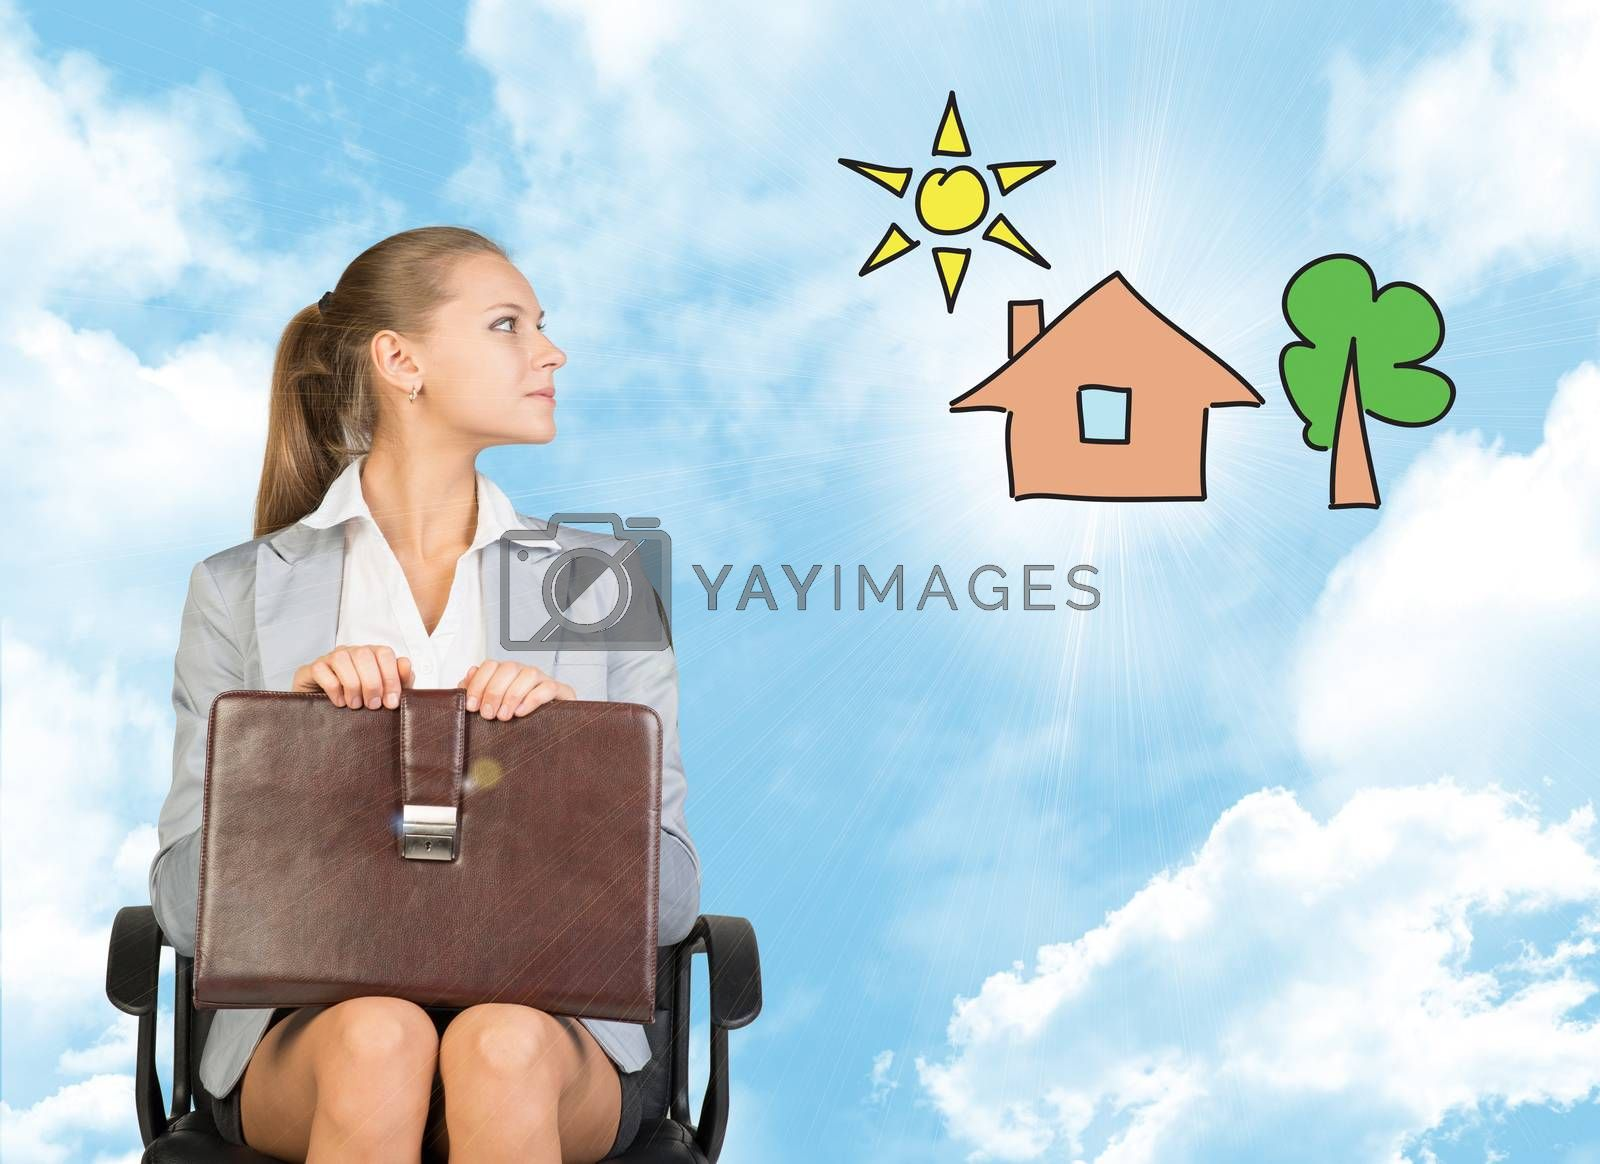 Business woman in skirt, blouse and jacket, sitting on chair imagines house with tree. Against background of blue sky and clouds